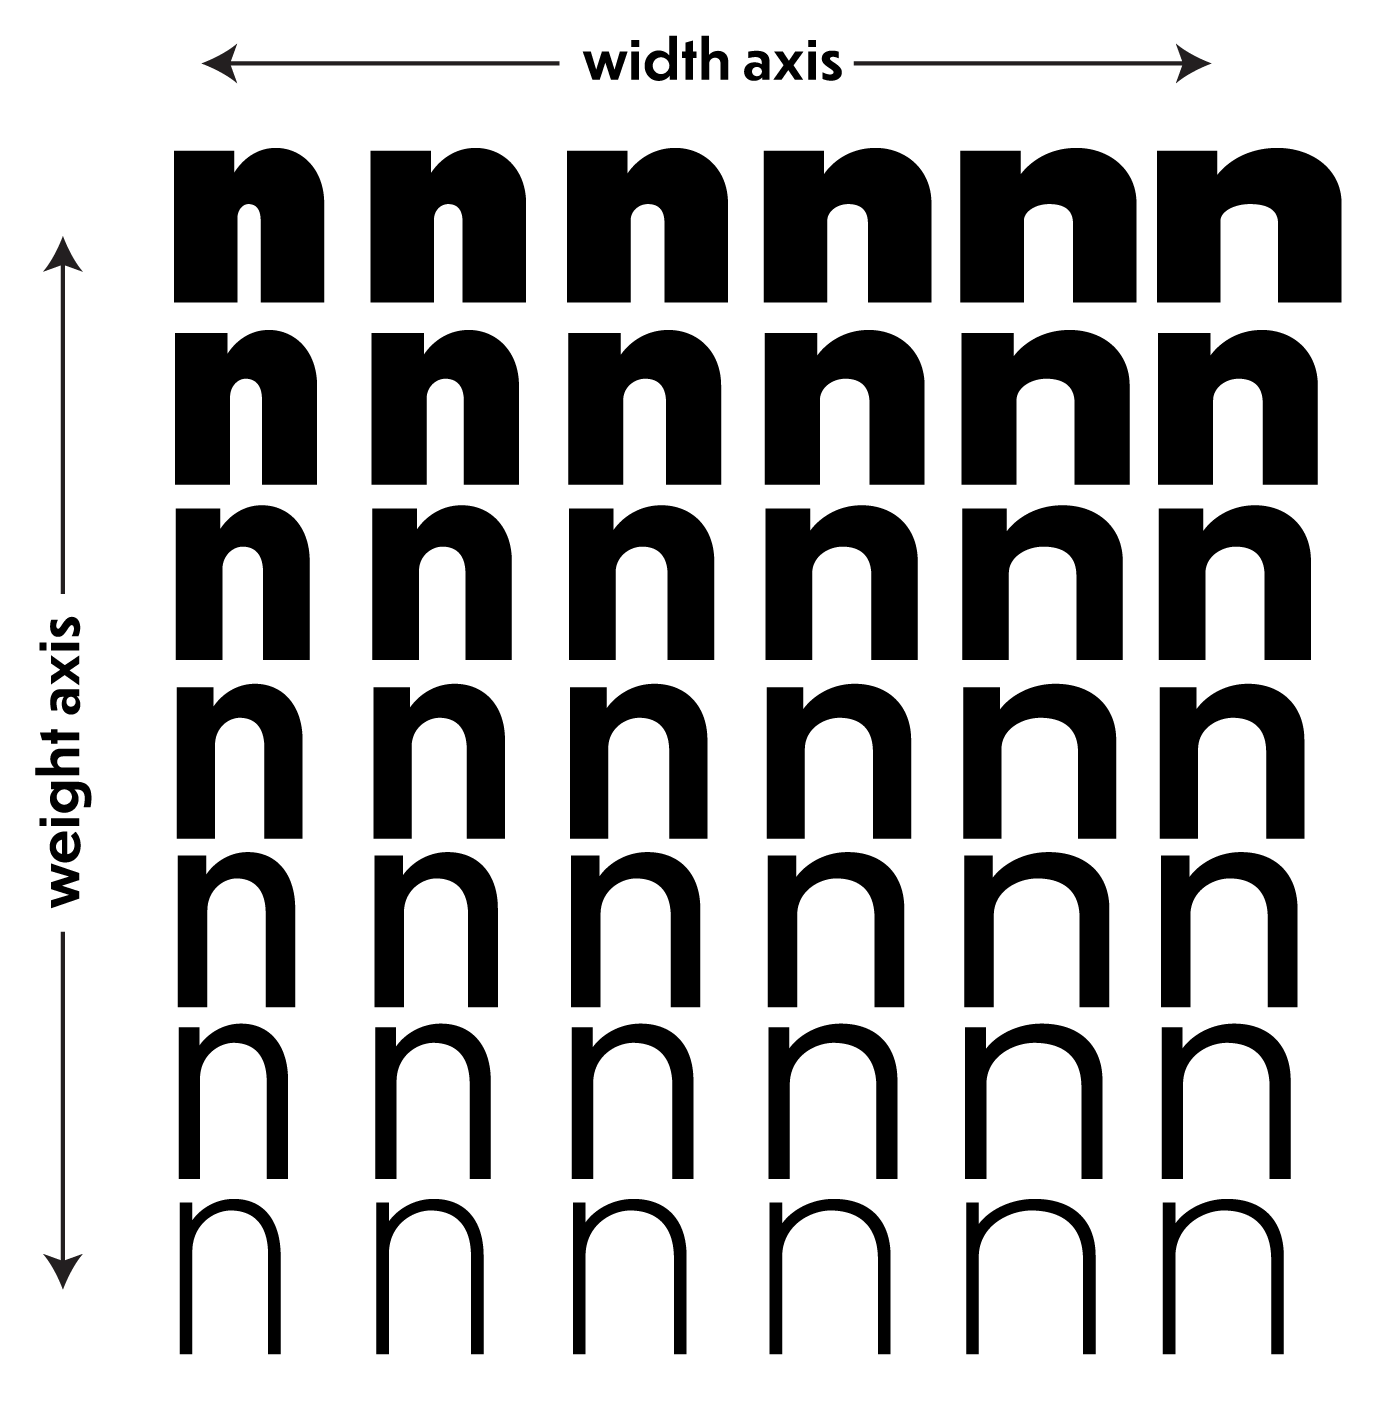 Continuous variation of weights and widths across multiple axes. Illustration by CJ Dunn using Dunbar